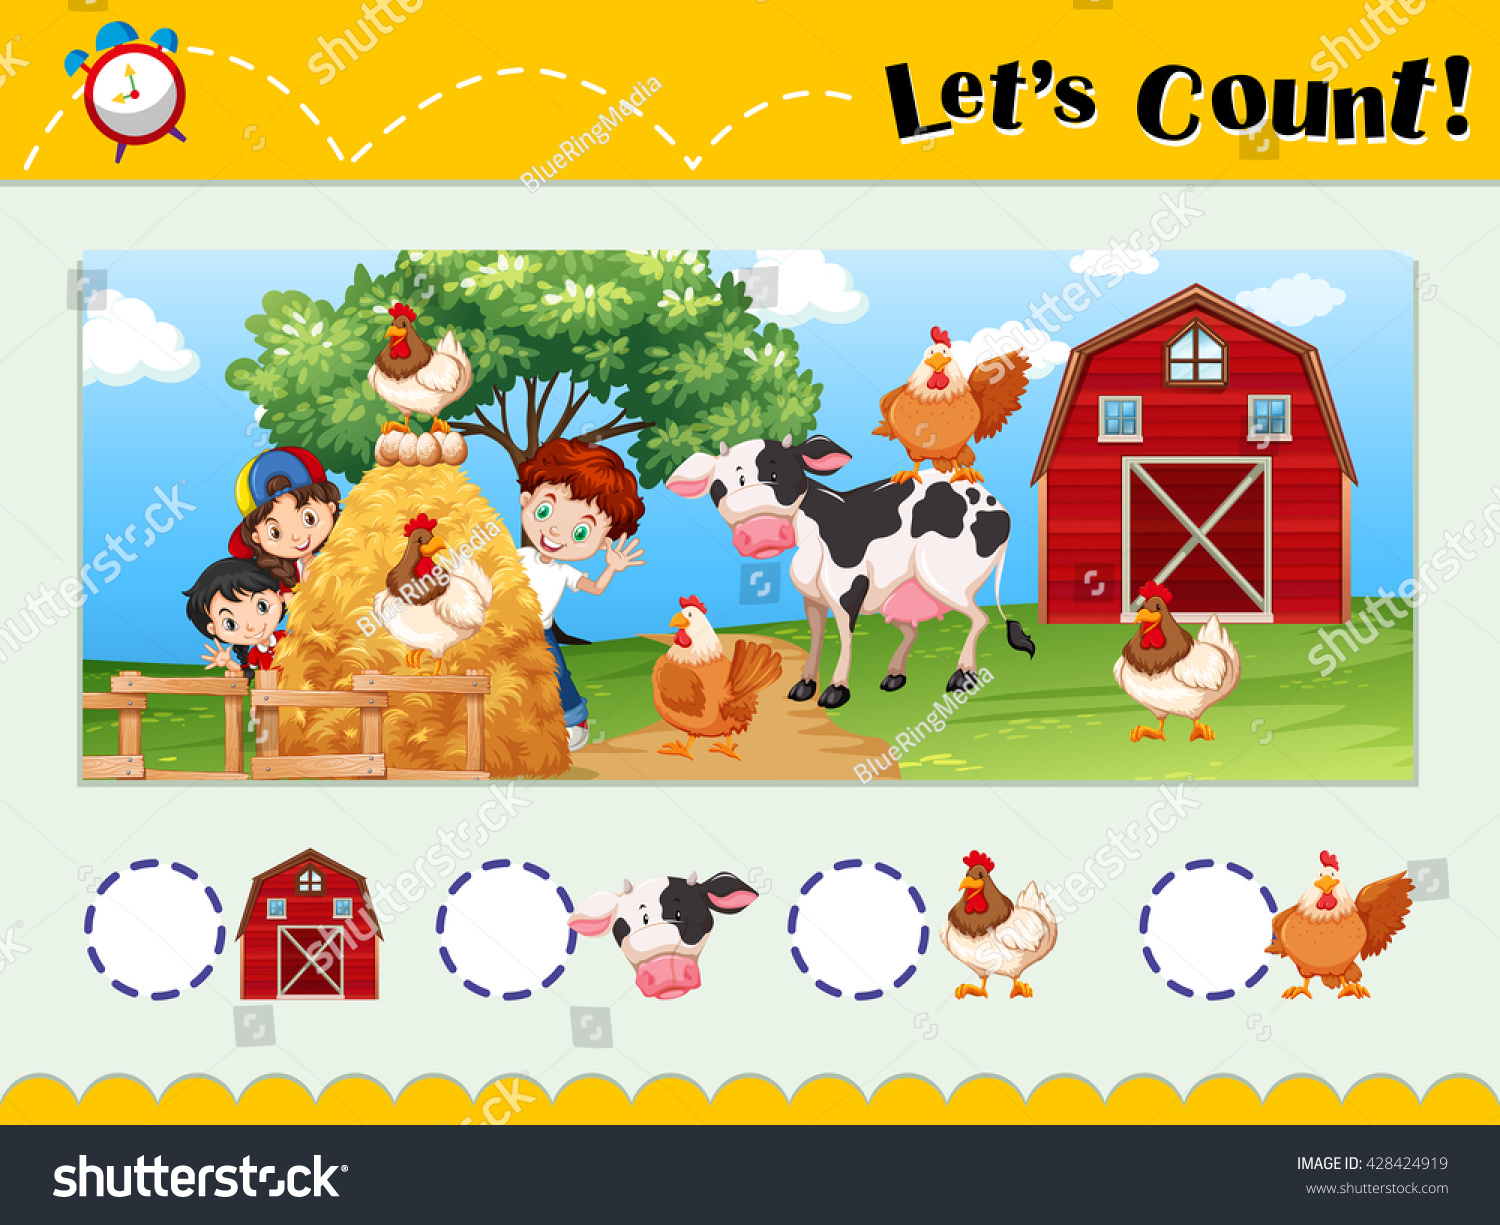 Worksheet Design Counting Animals Stock Vector